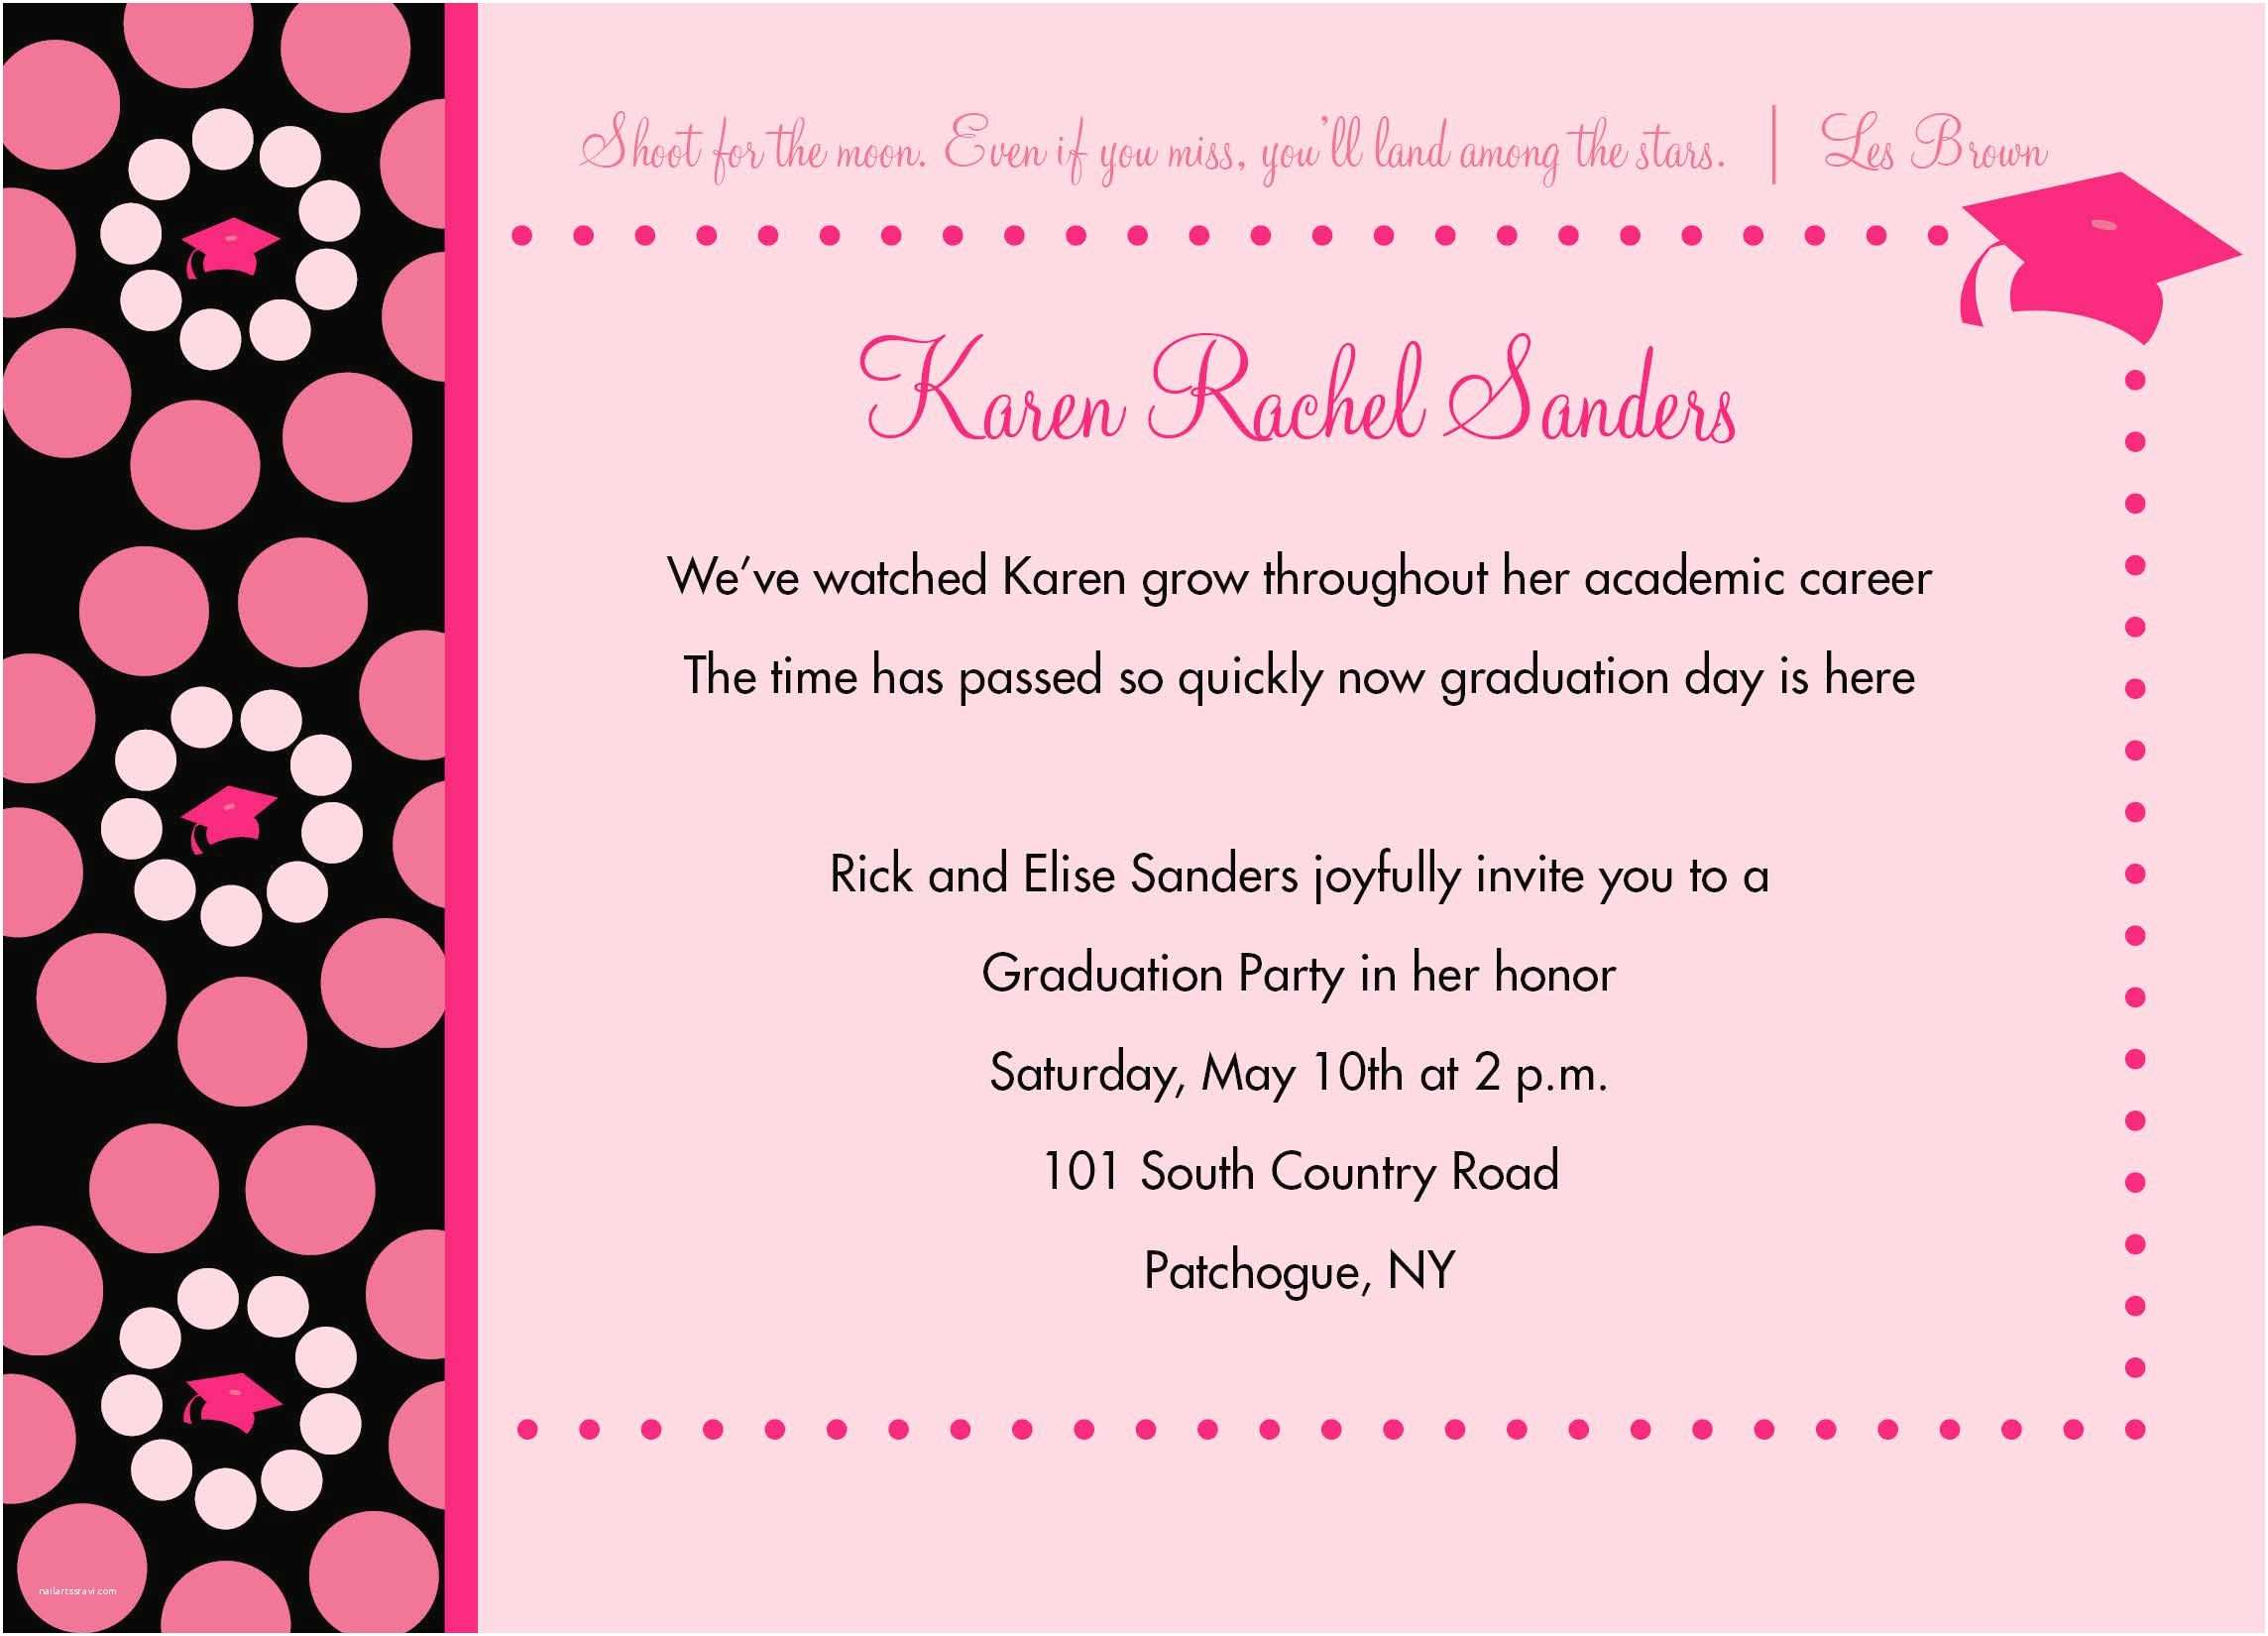 Graduation Party Invitation Wording Invitation Card for Graduation Party Invitation for